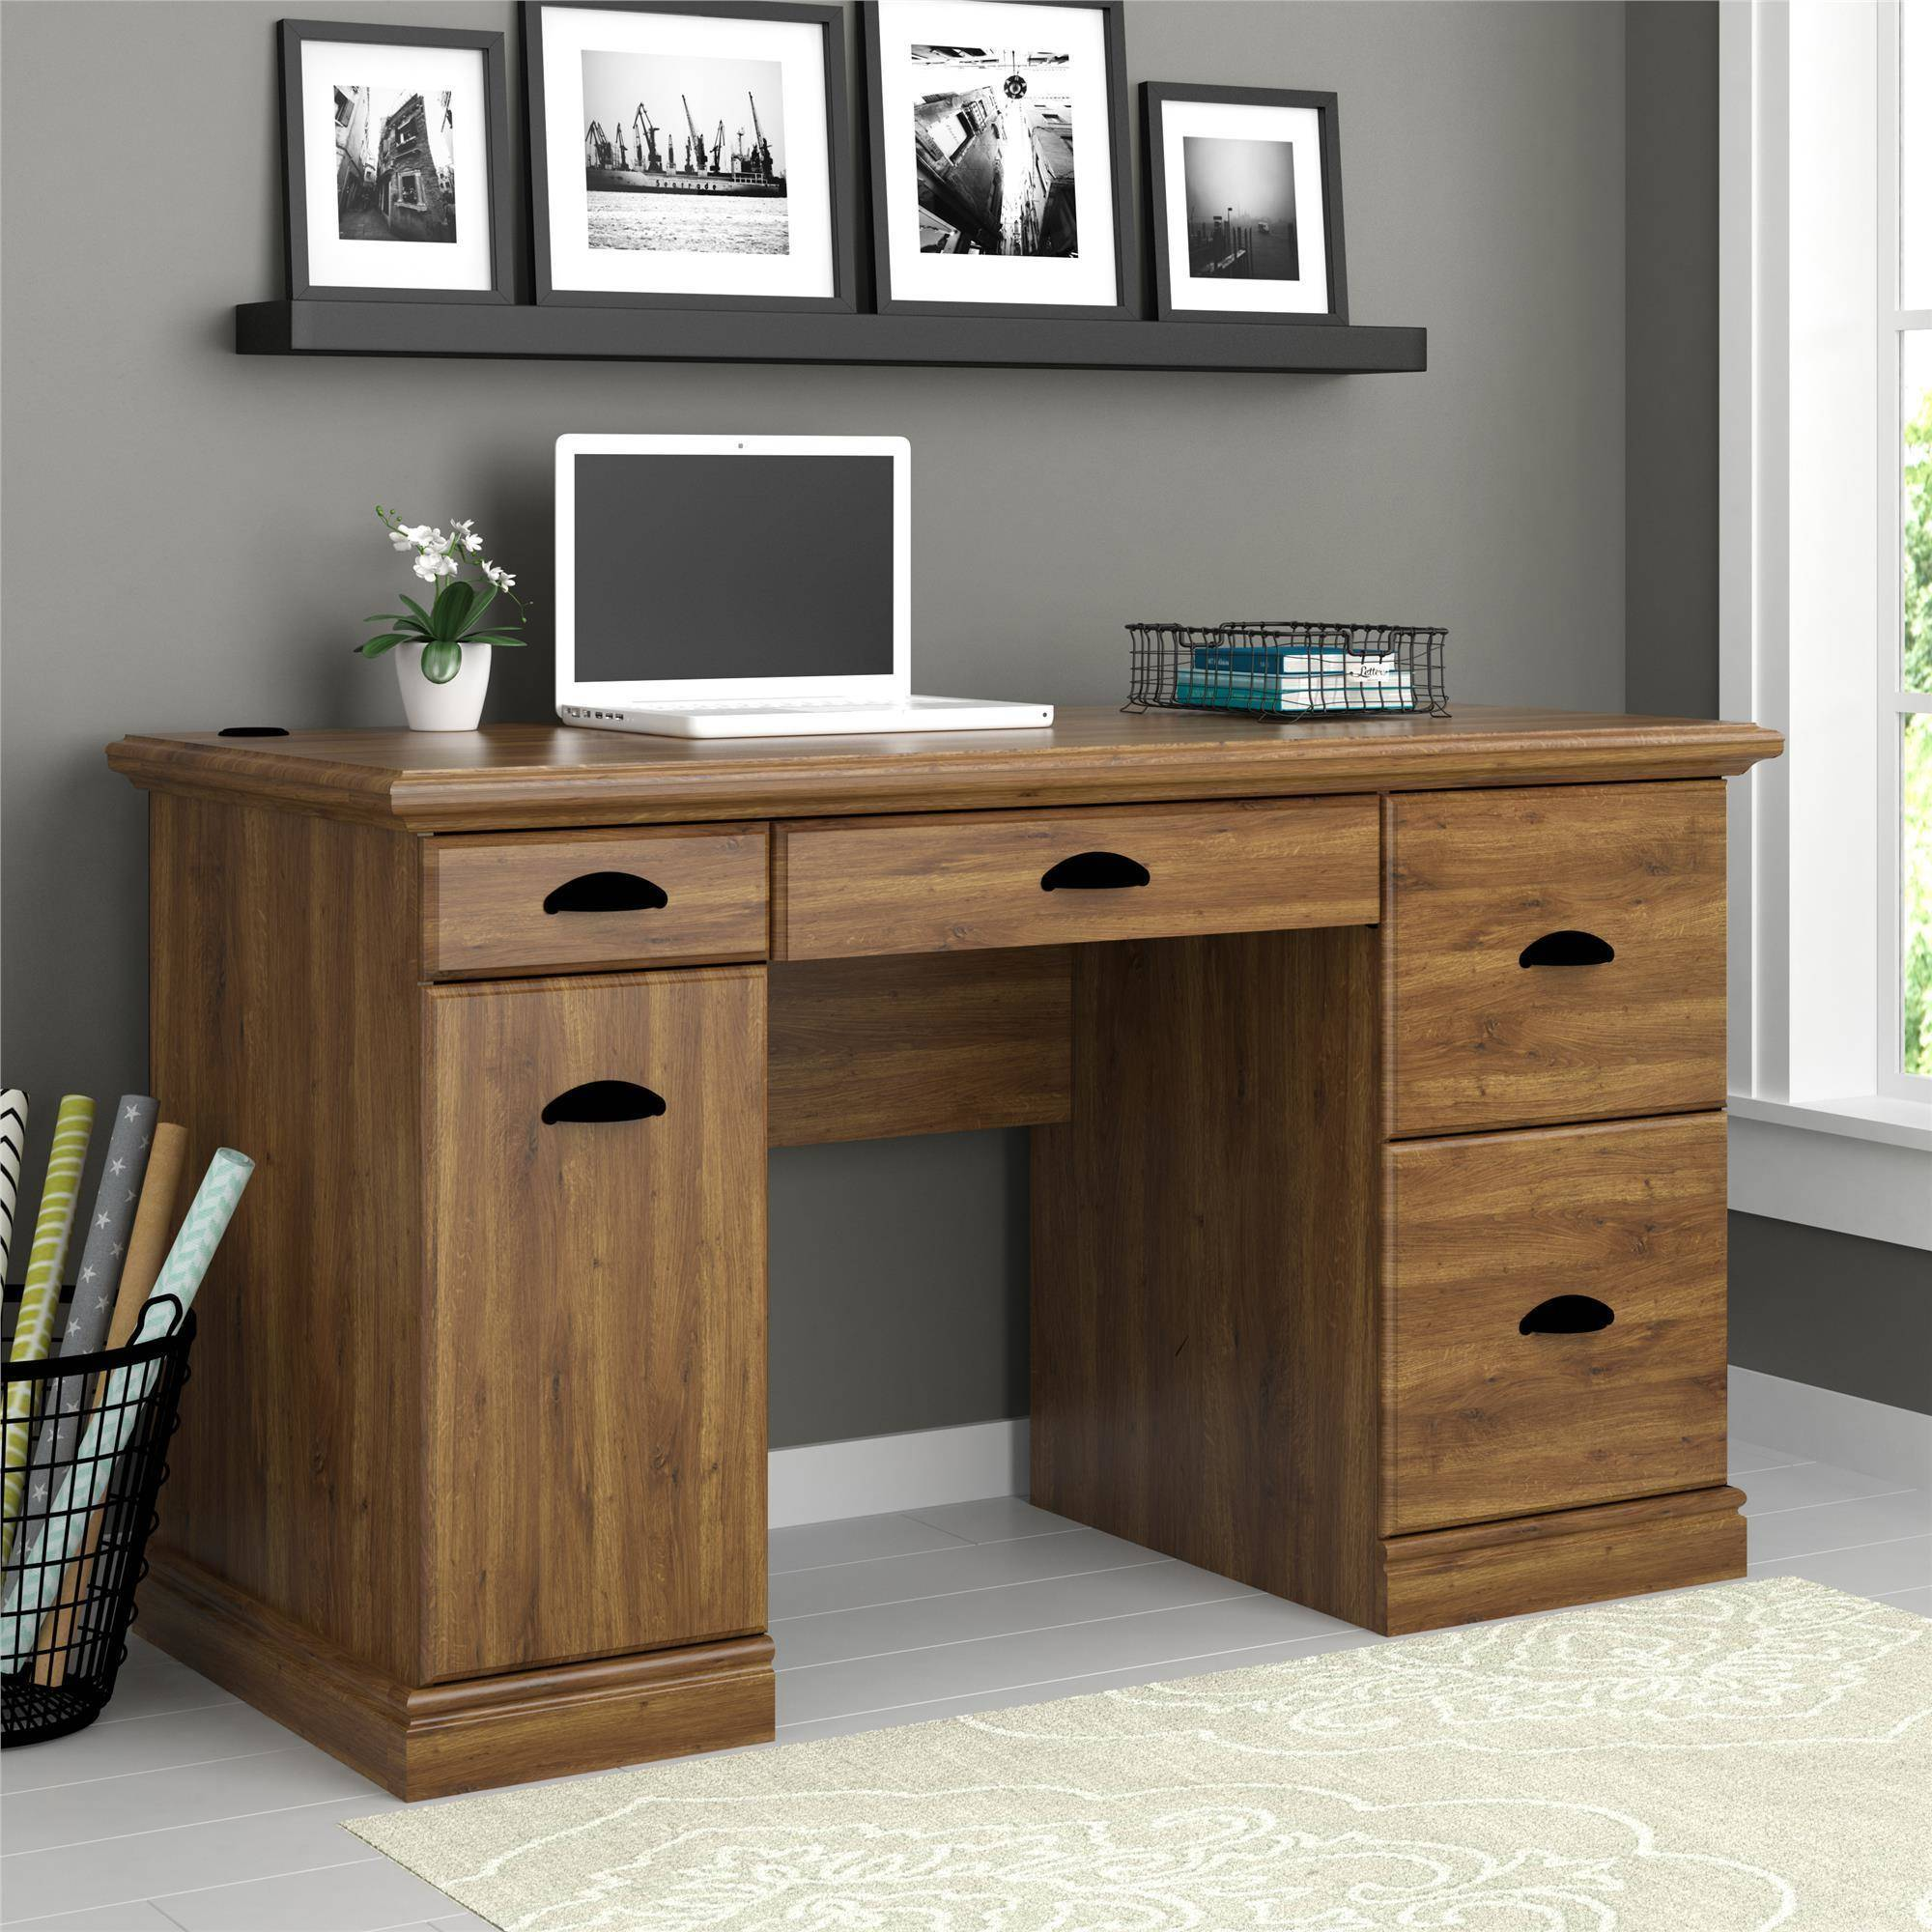 Better Homes And Gardens Computer Desk, Brown Oak Awesome Ideas